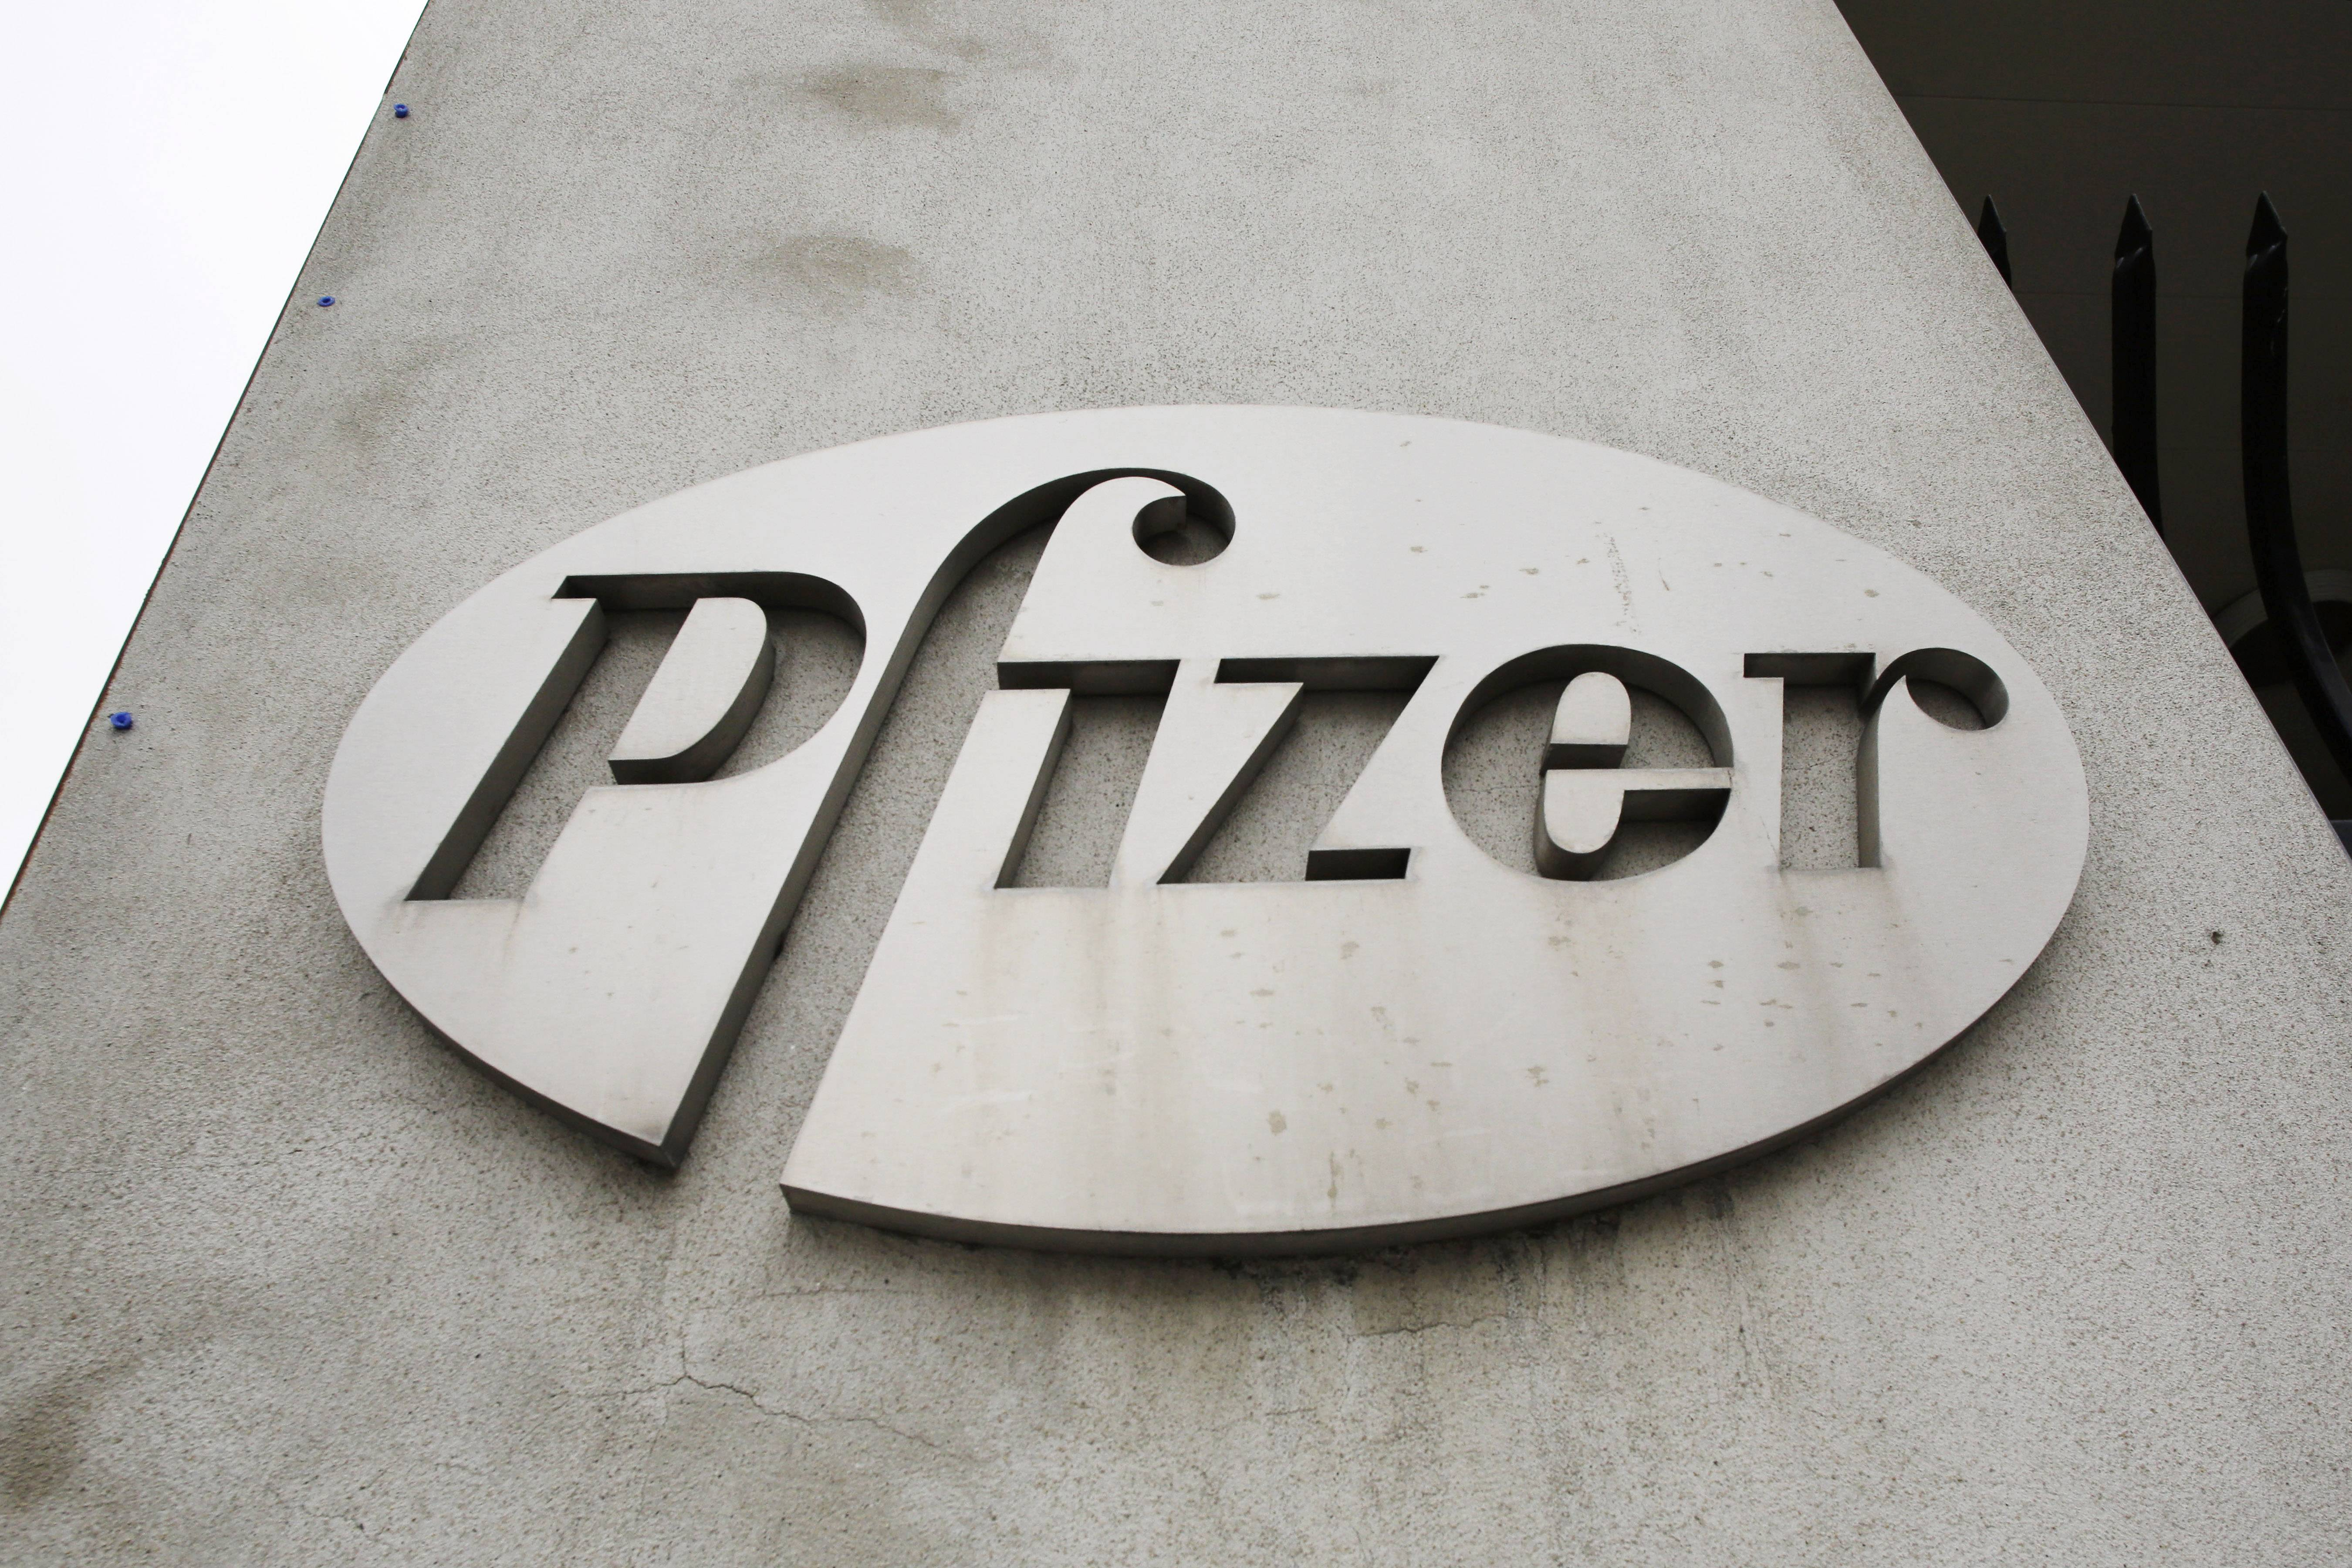 In this May 4, 2014 photo, the Pfizer logo is displayed on the exterior of a former Pfizer factory in the Brooklyn borough of New York. Pfizer says it does not intend to make a takeover offer for British drugmaker AstraZeneca. The Monday, May 26, 2014 announcement comes a week after AstraZeneca's board rejected a proposed $119 billion buyout offer from Pfizer, the world's second-biggest drugmaker by revenue.